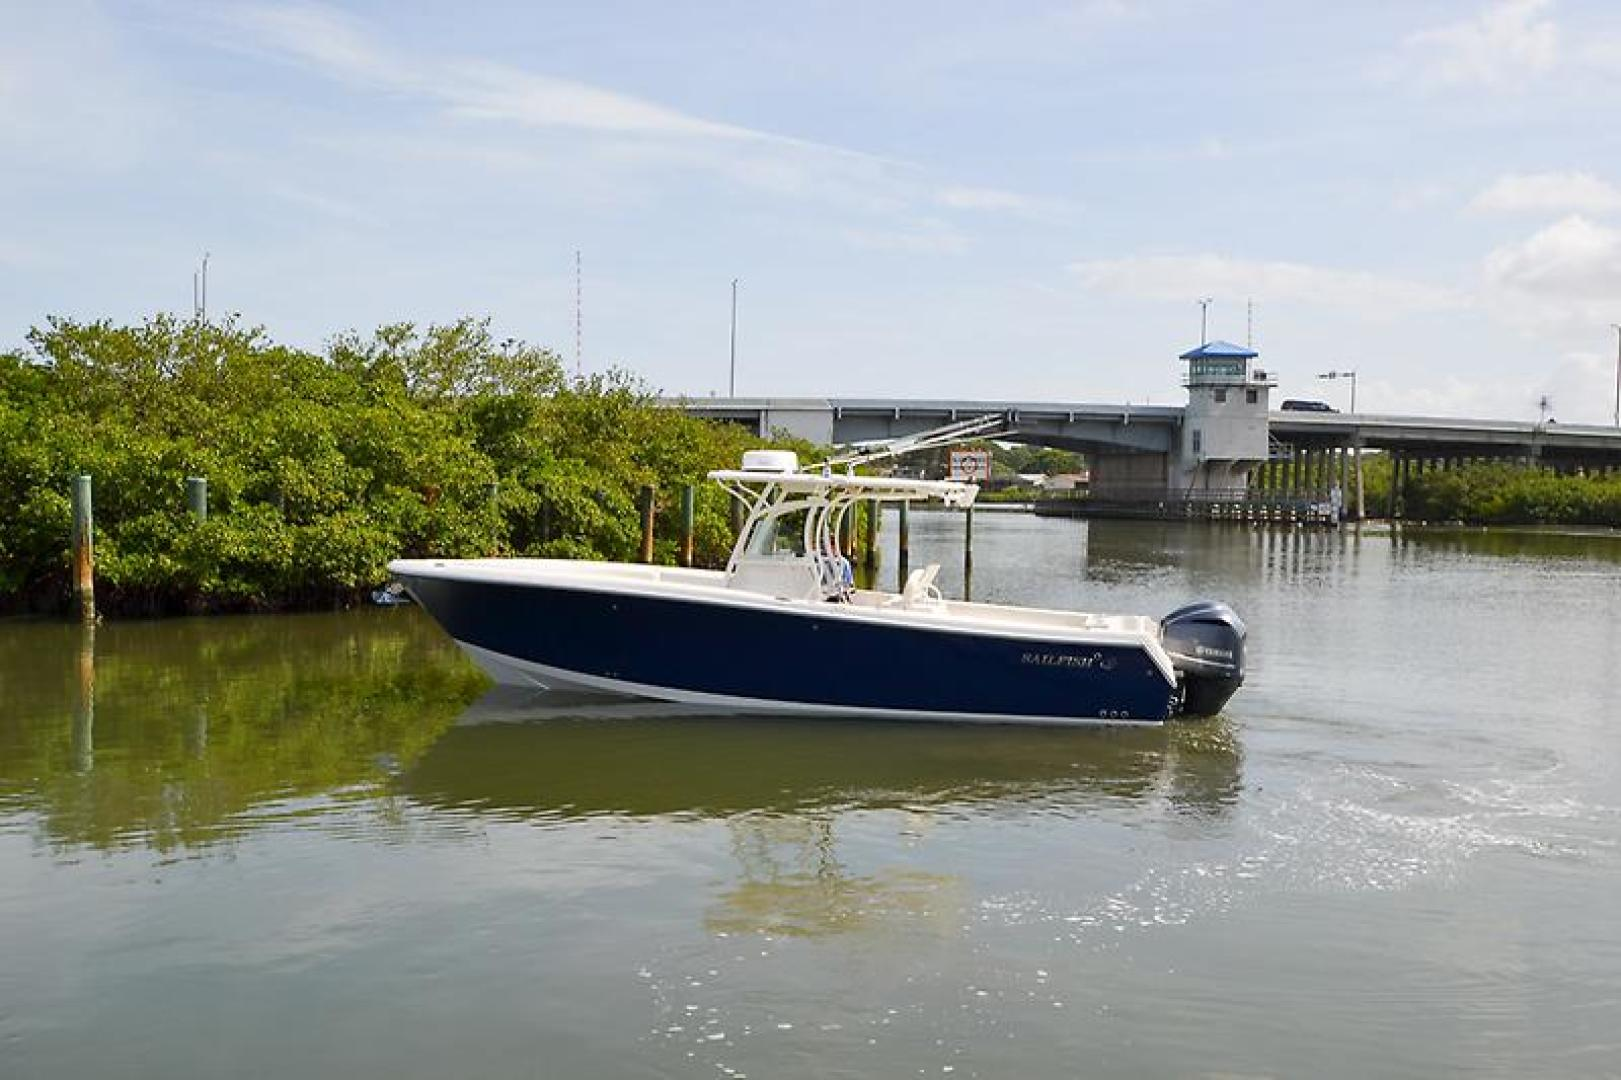 2014 Sailfish 320 cc-21.jpg